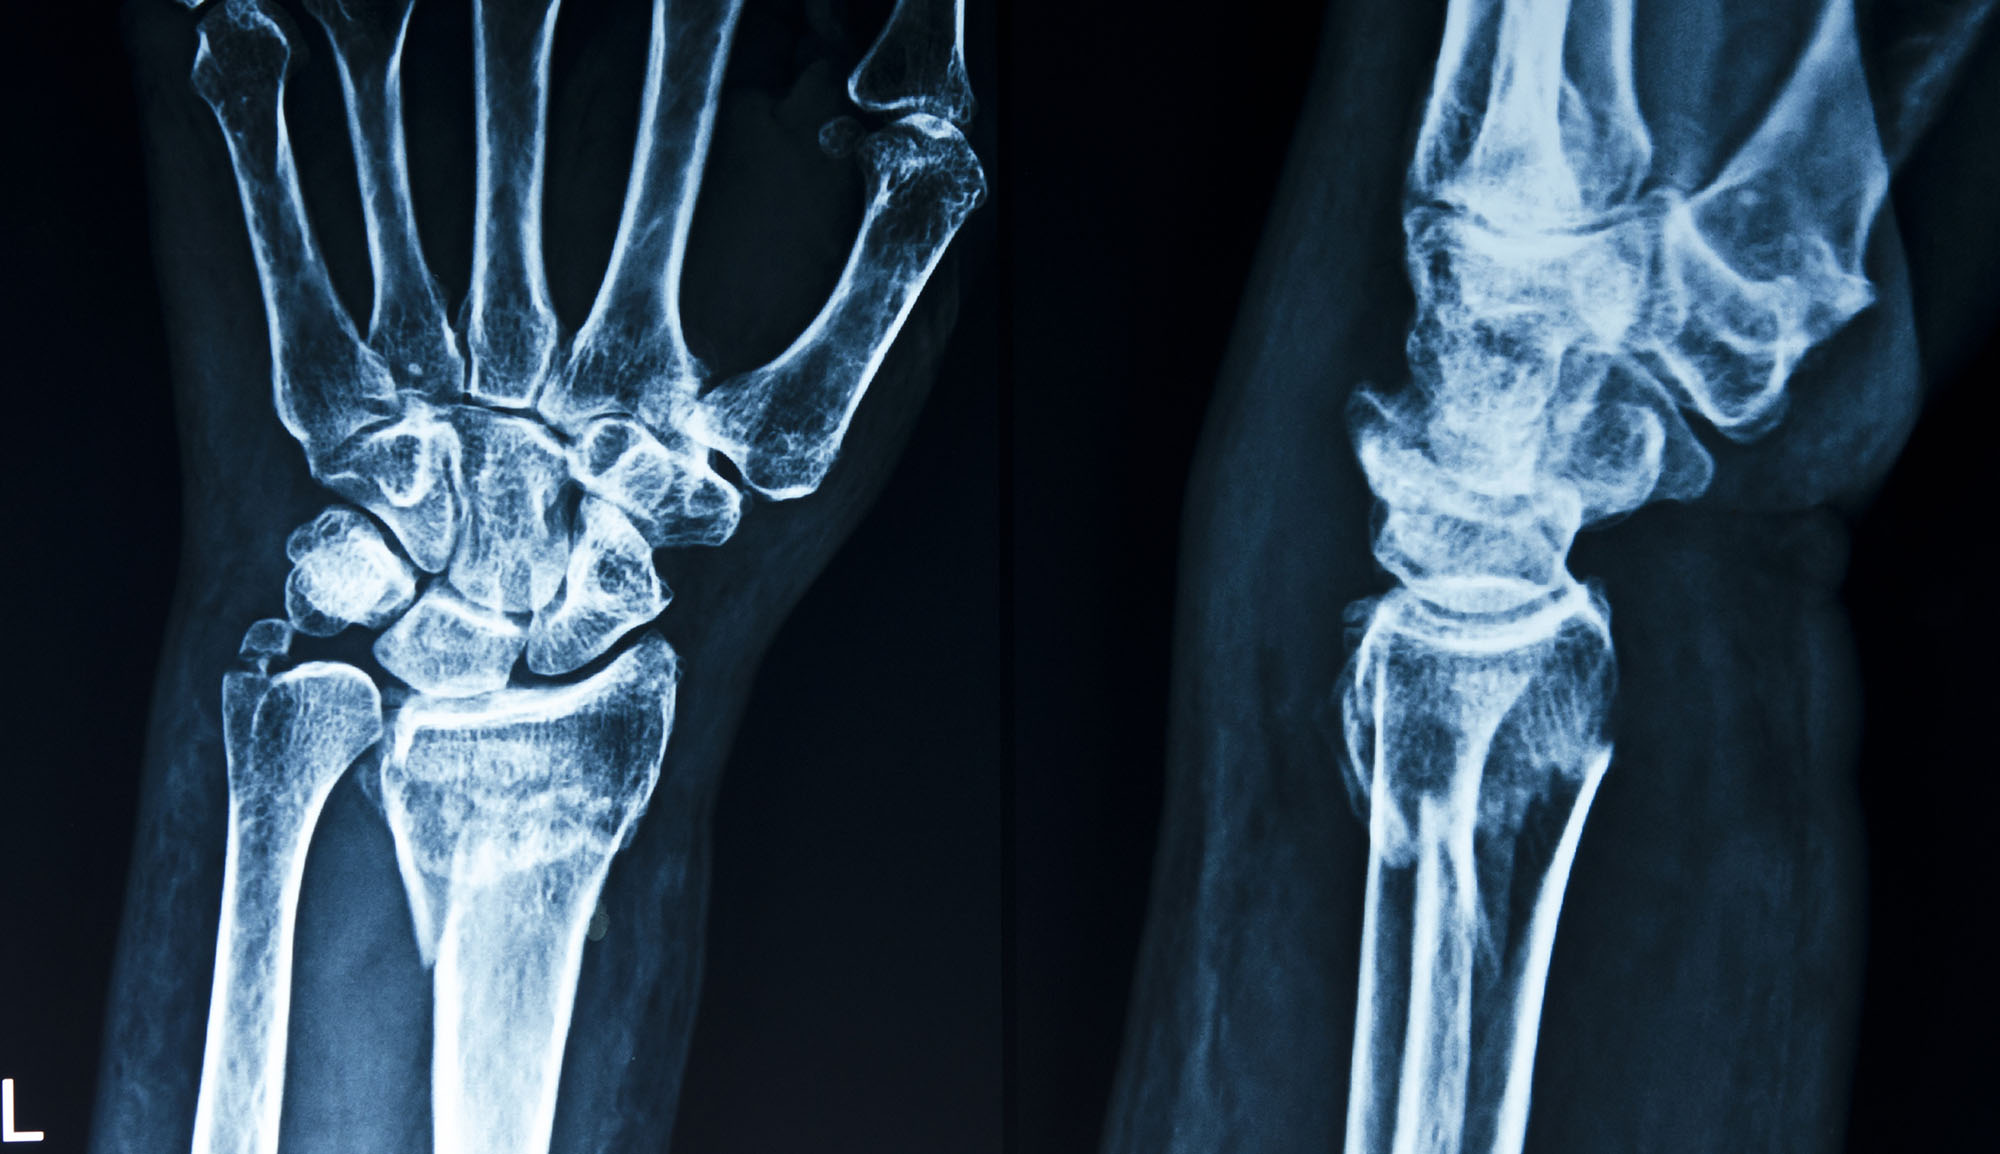 European wrist replacement market to see steady growth as more people take up sport